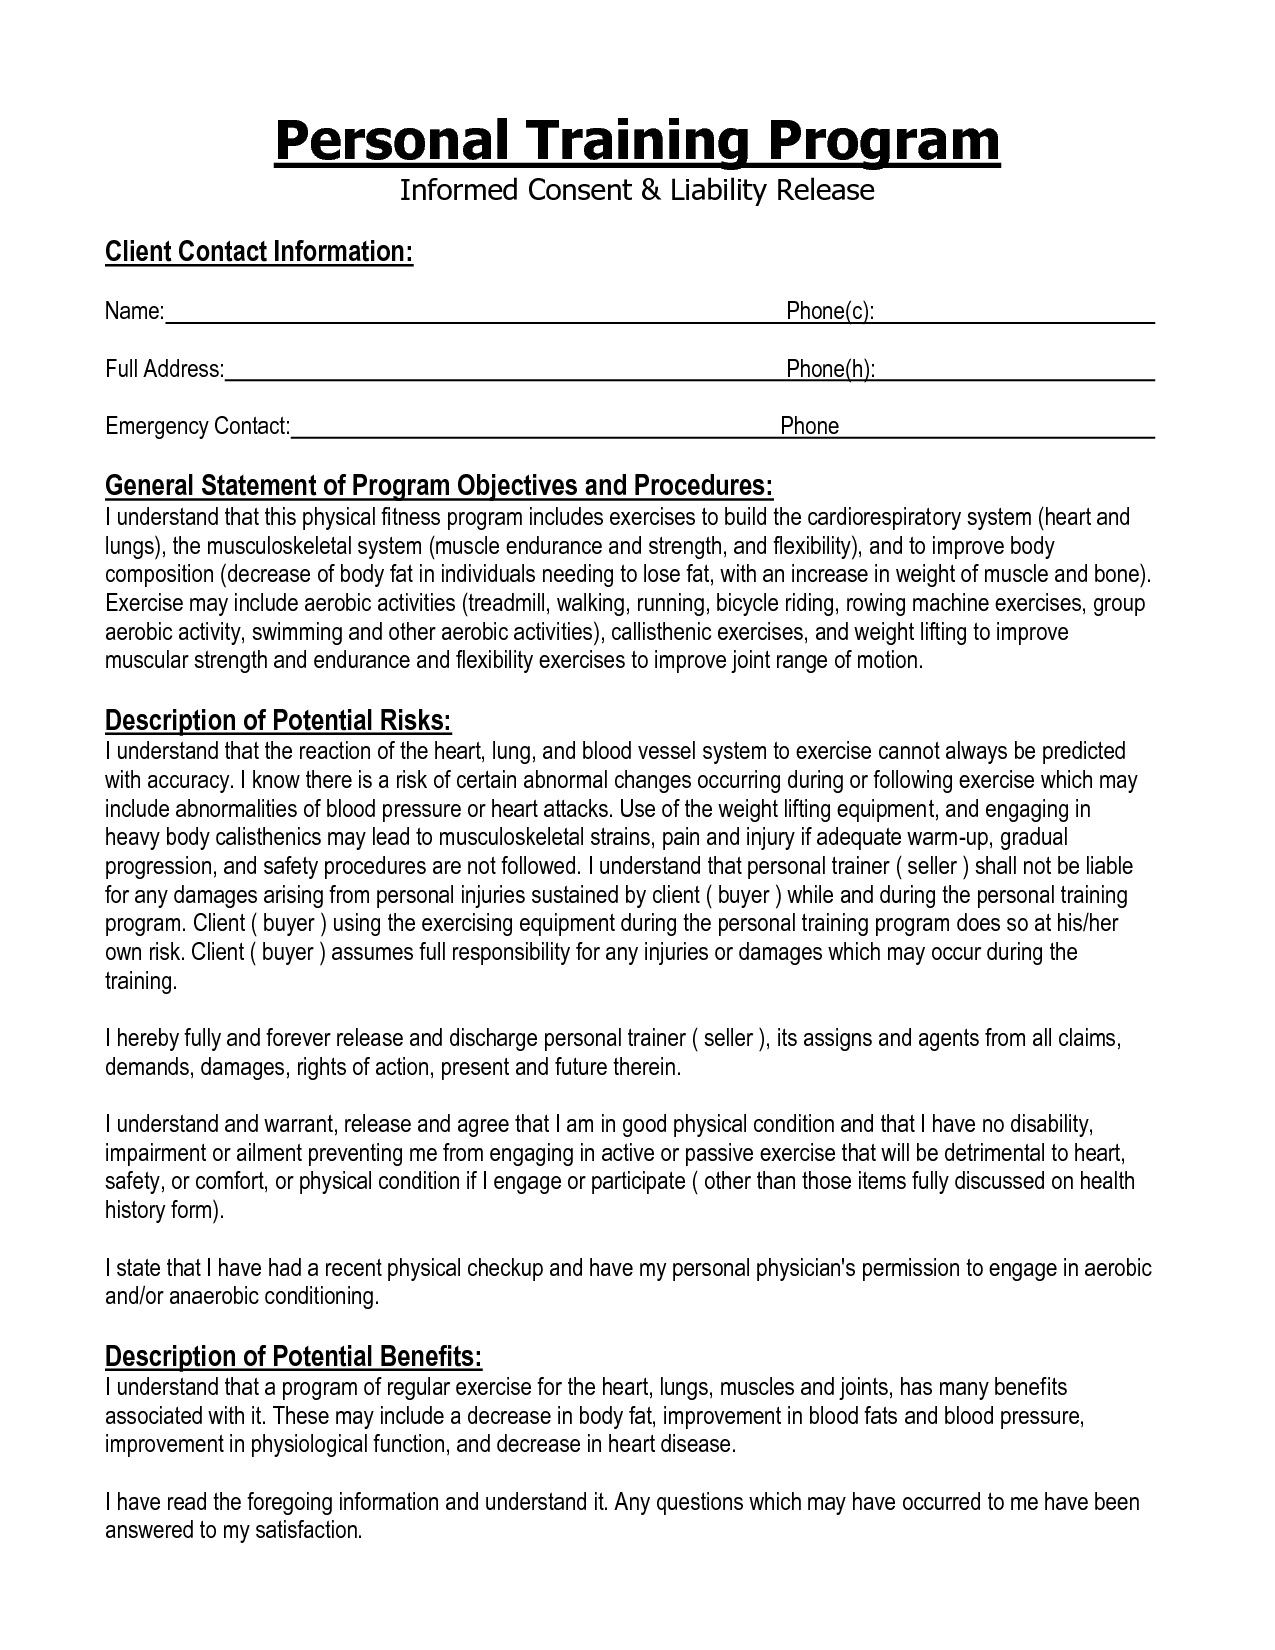 informed consent form personal training Google Search – Release of Personal Information Form